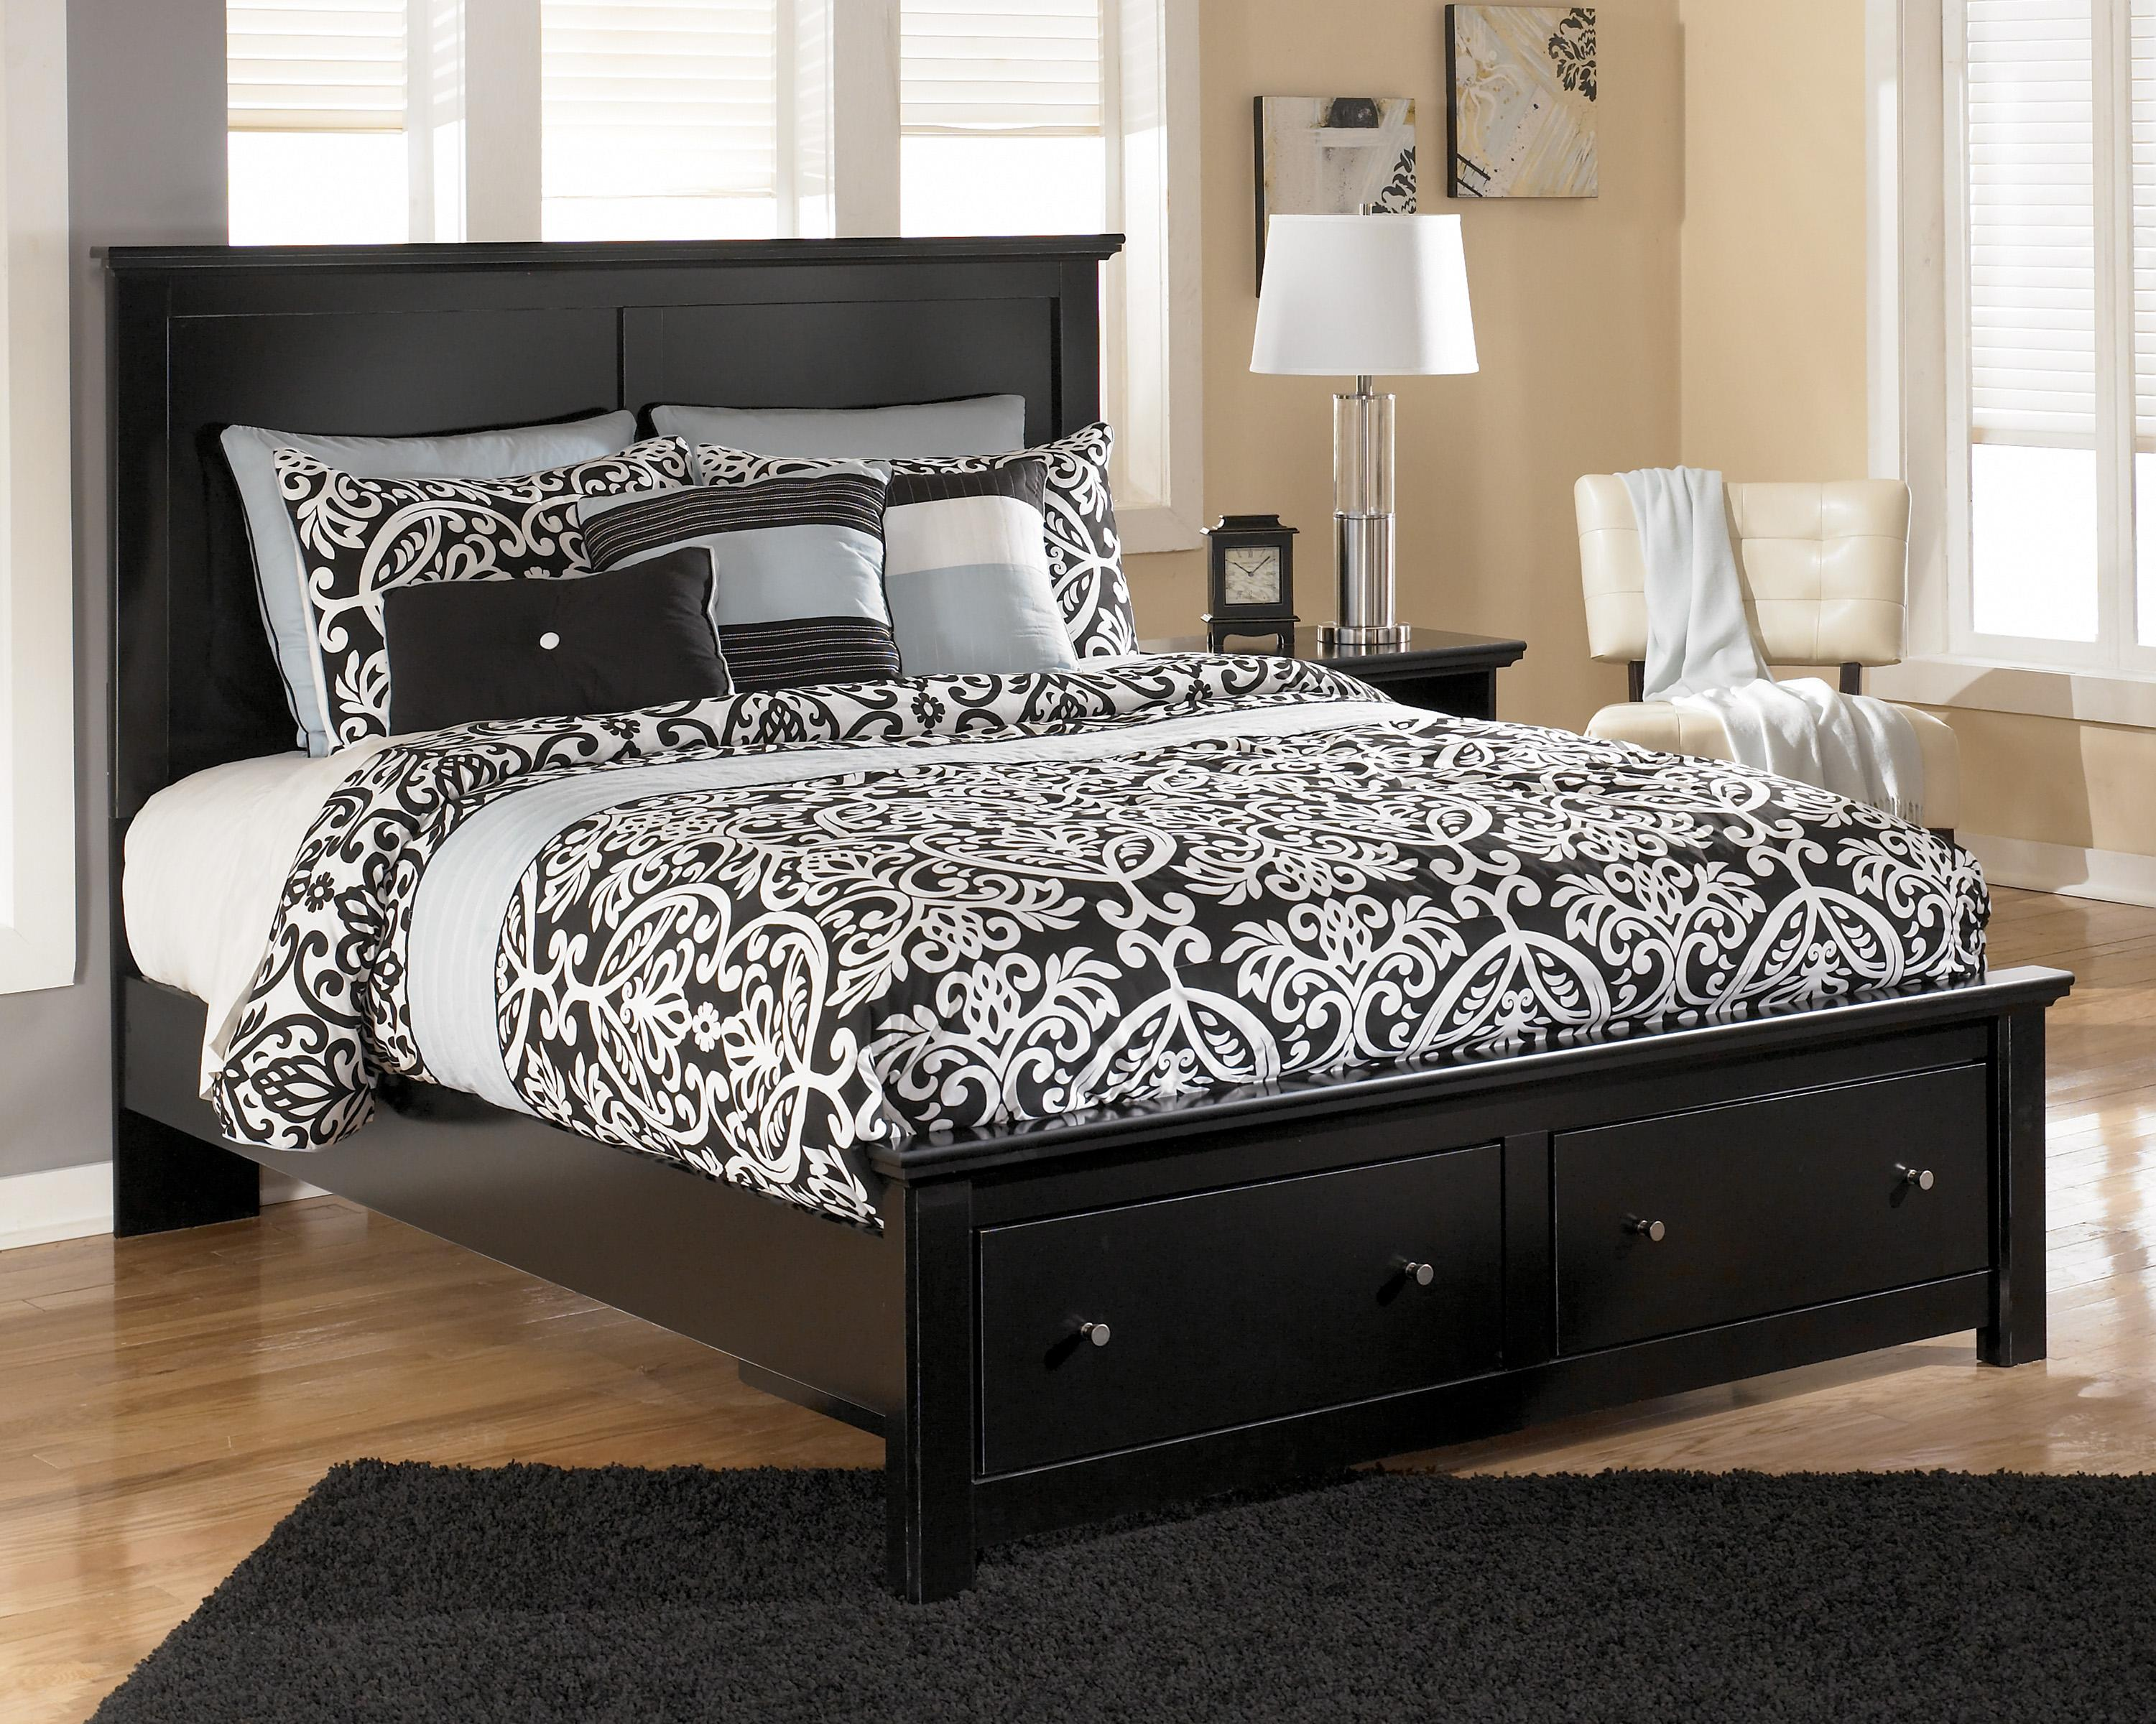 ashley signature design maribel b138 57 54s 95 b100 13 queen storage bed with 2 footboard. Black Bedroom Furniture Sets. Home Design Ideas